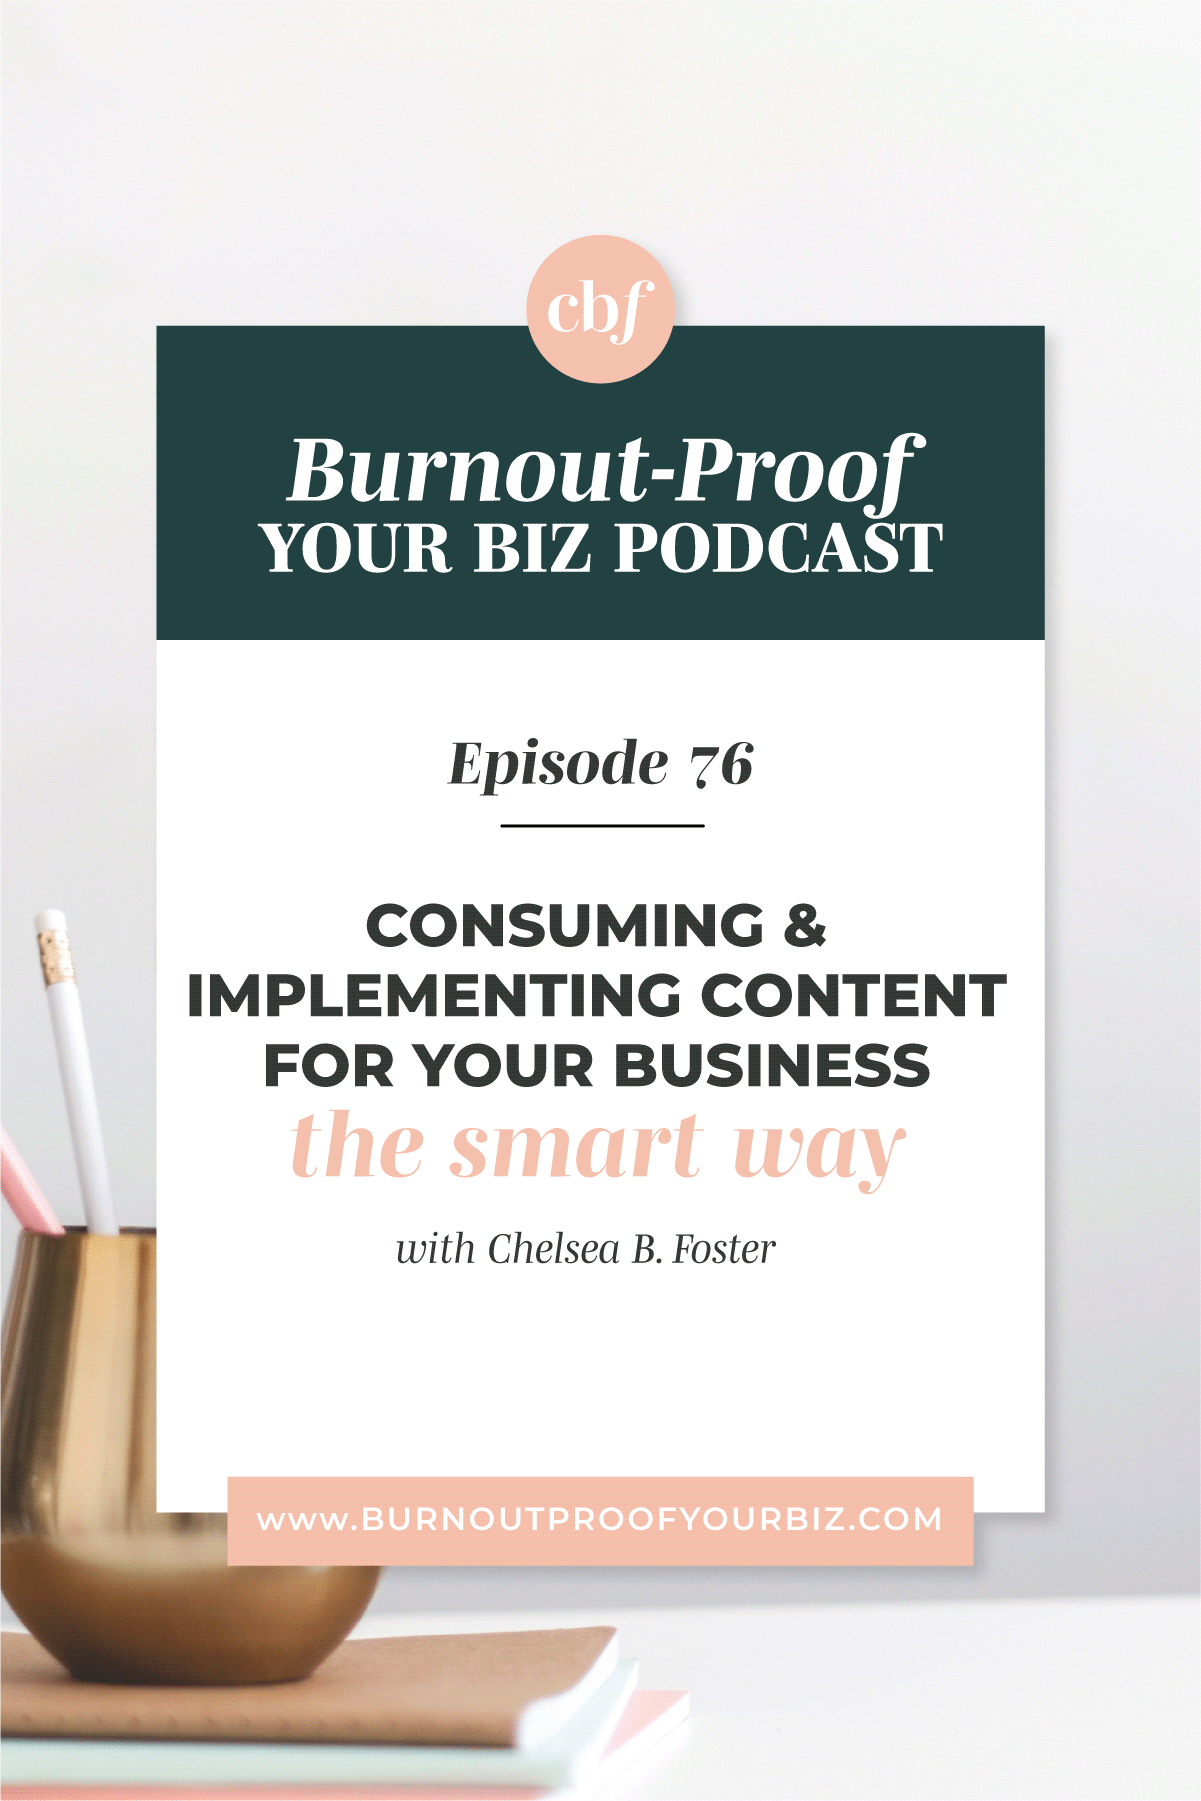 Burnout-Proof Your Biz Podcast with Chelsea B Foster | Episode 076 - When Consuming Content is Actually Bad for You